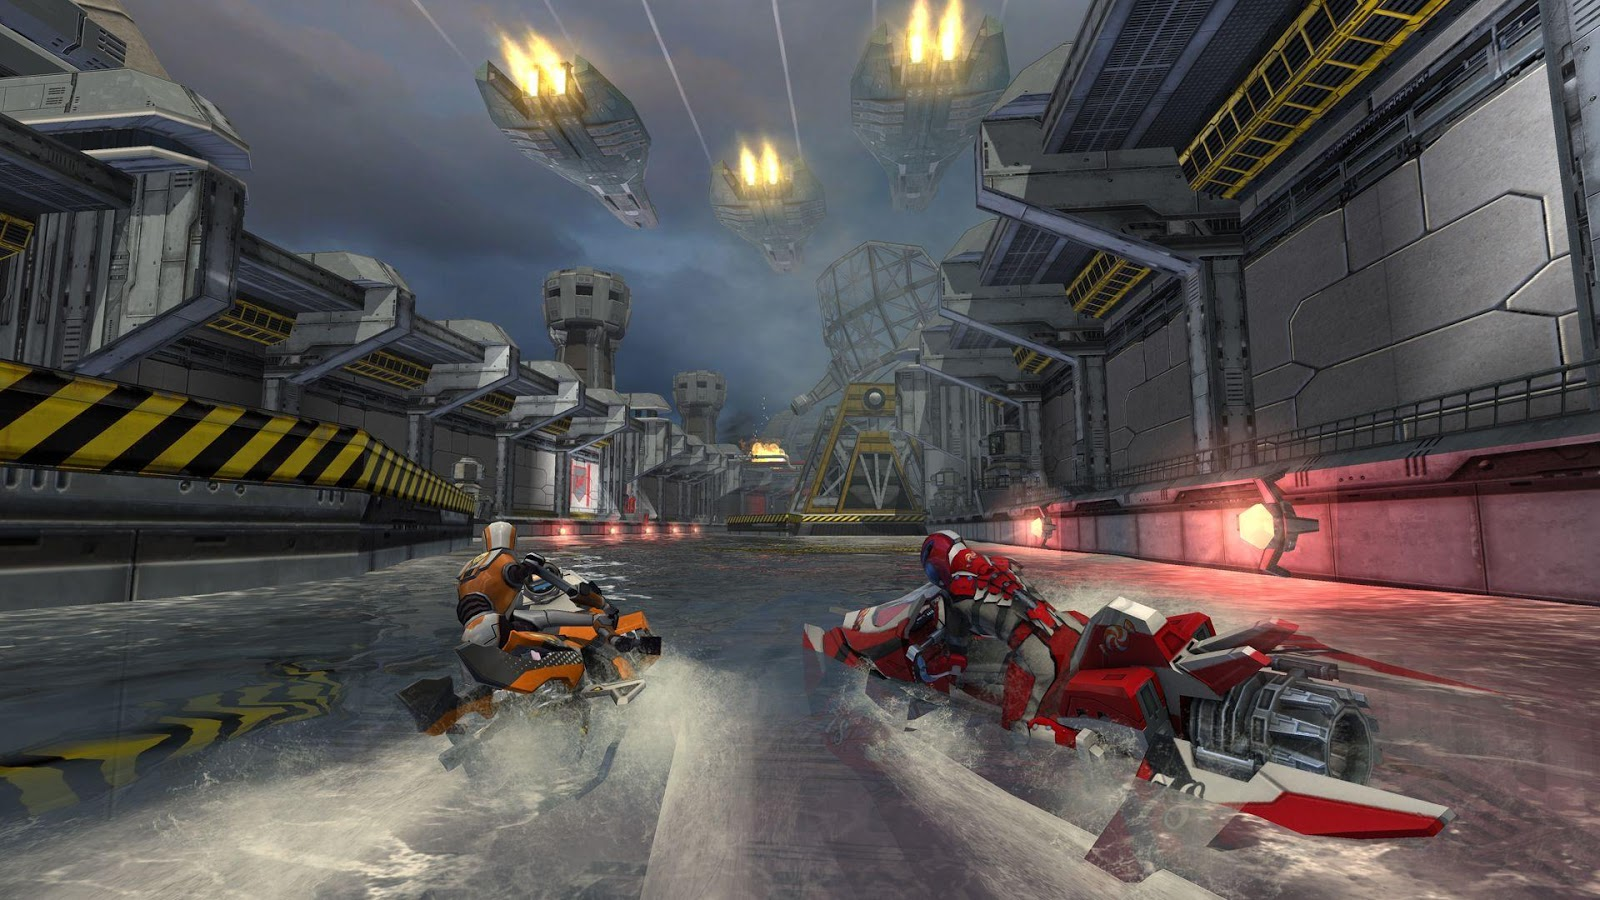 Riptide GP: Renegade Screenshot 3